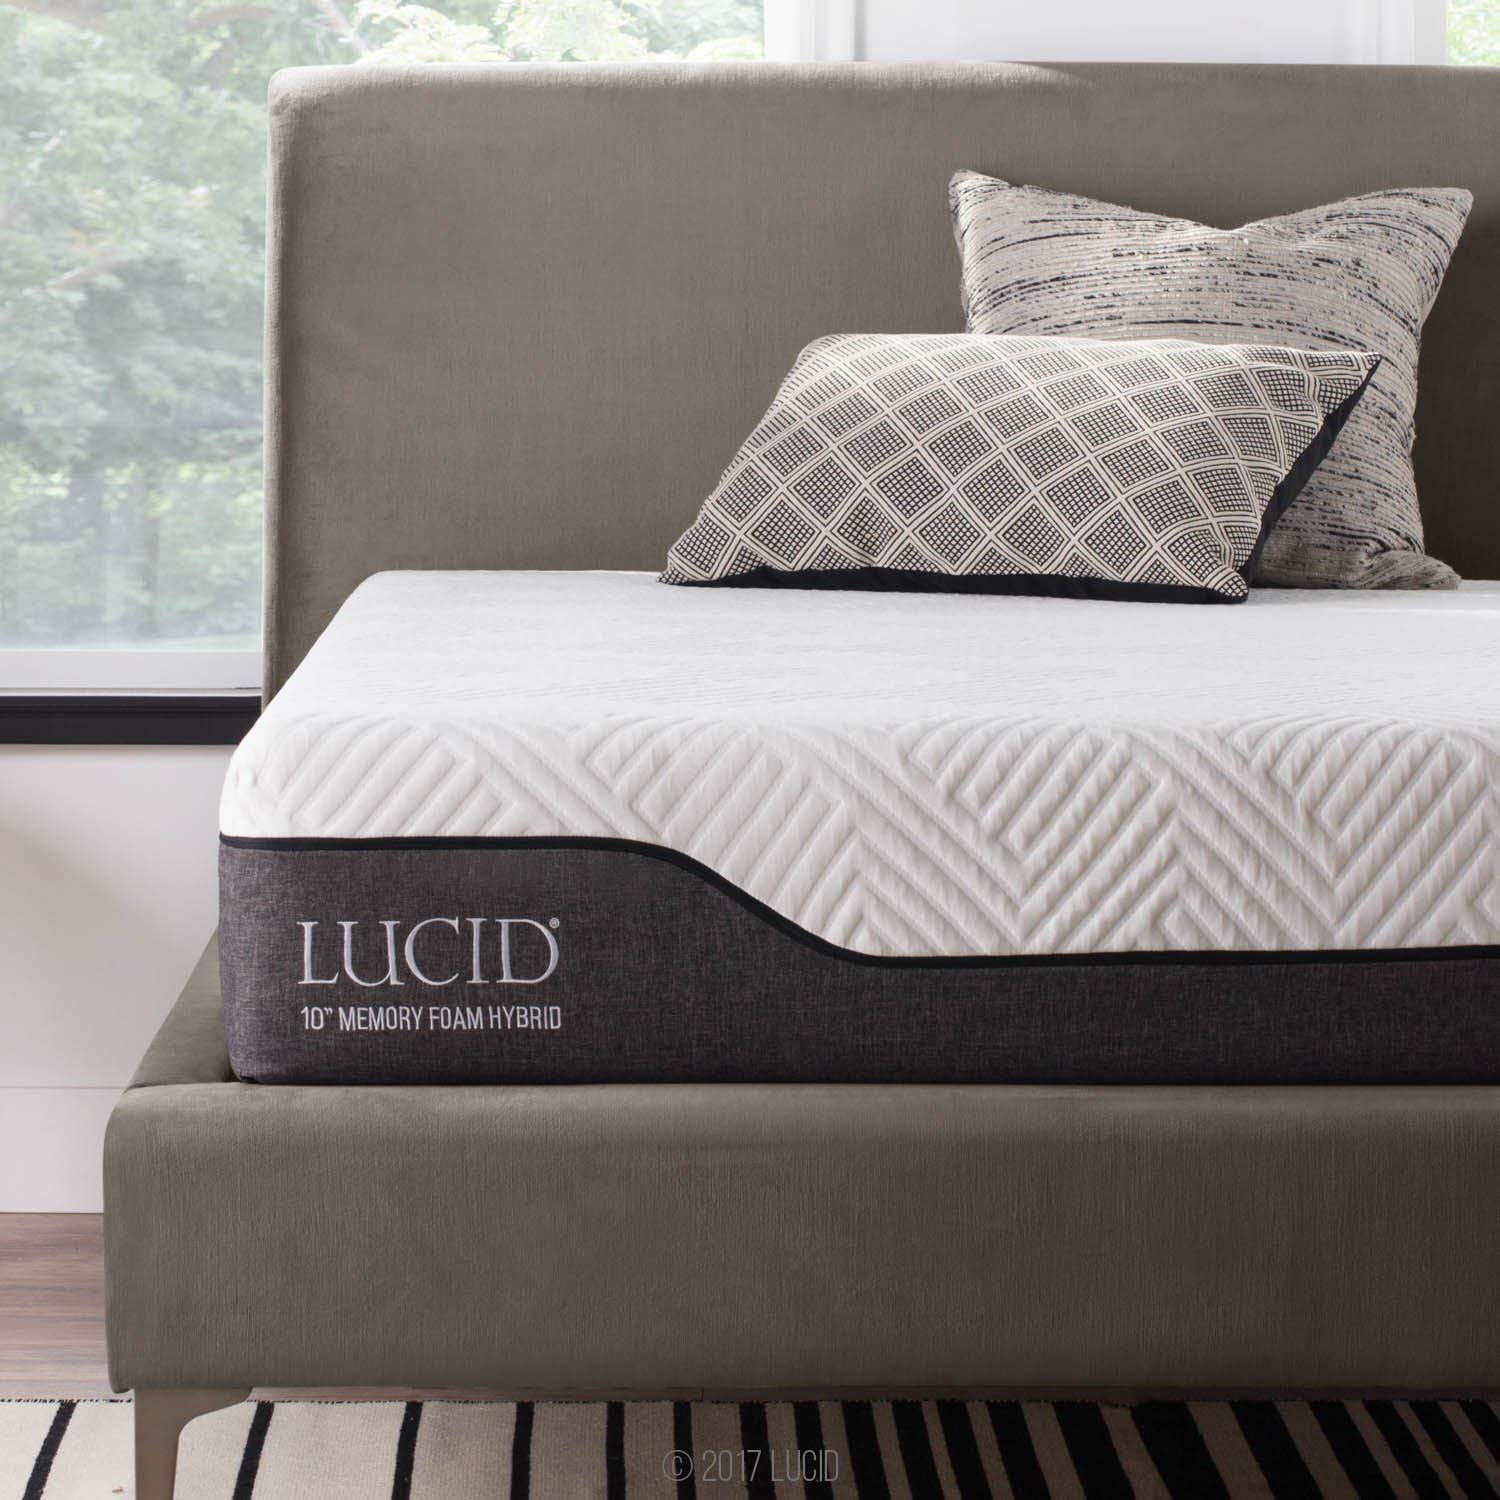 LUCID Memory Foam Hybrid Mattress Review